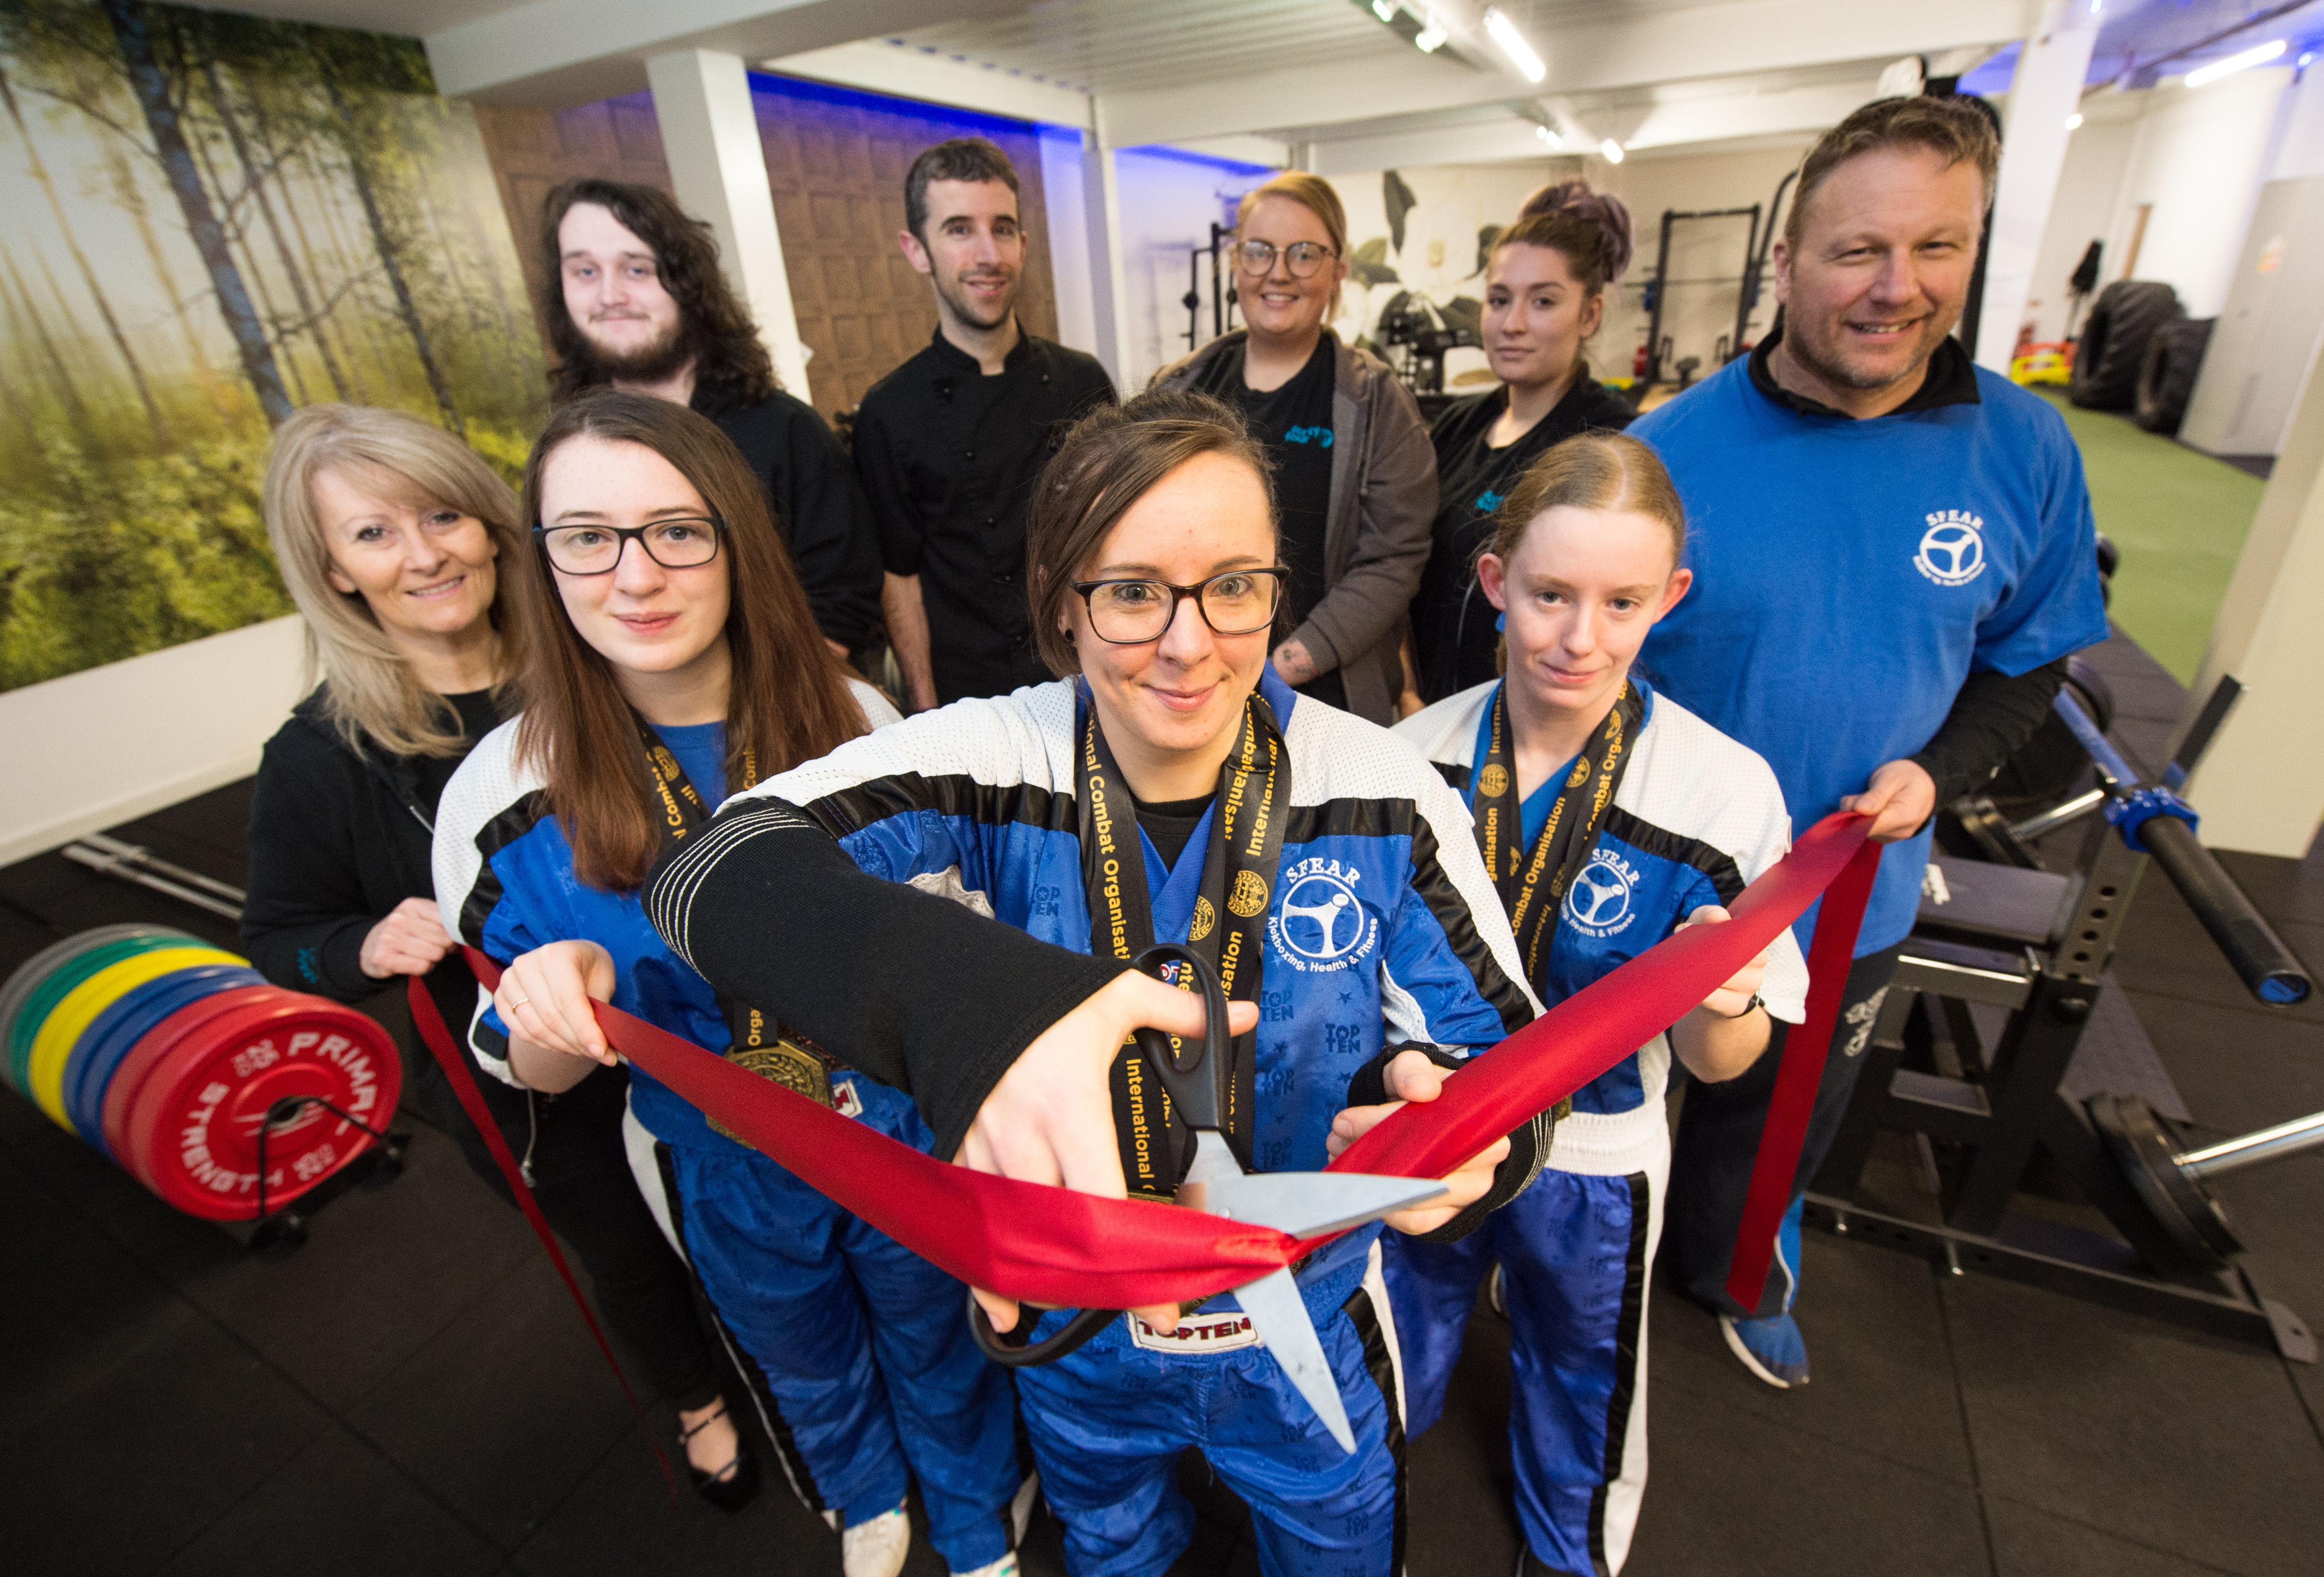 Three world champions and three world medal holders from Forty Four's Sfear kickboxing group cut the opening ribbon